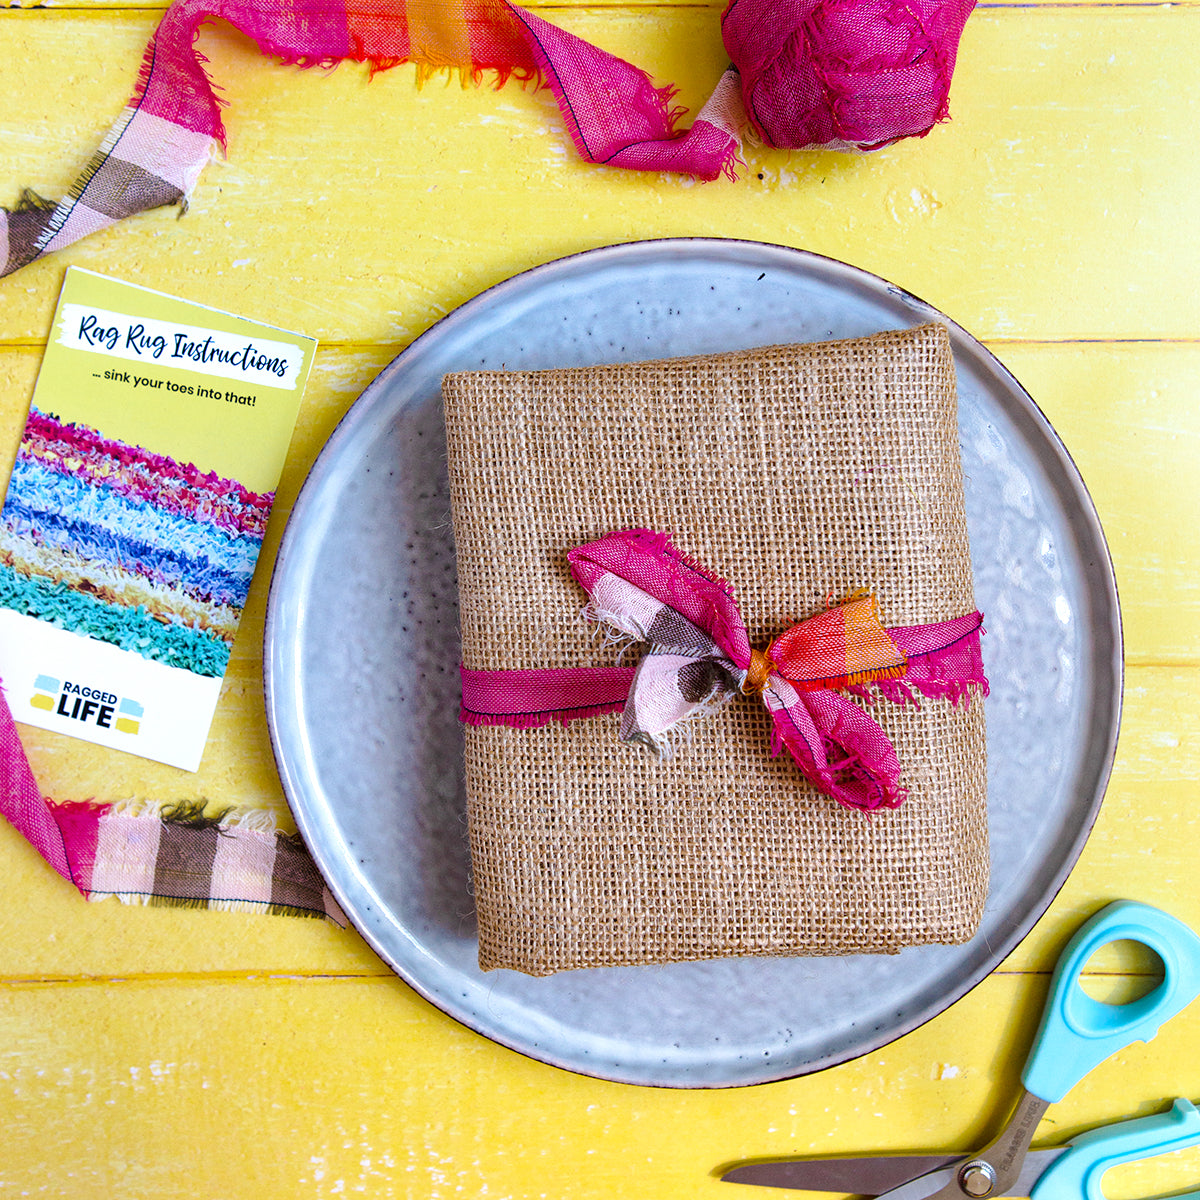 Ragged Life Rag Rug Hessian Burlap (10 holes per inch weave) tied up with fabric strip